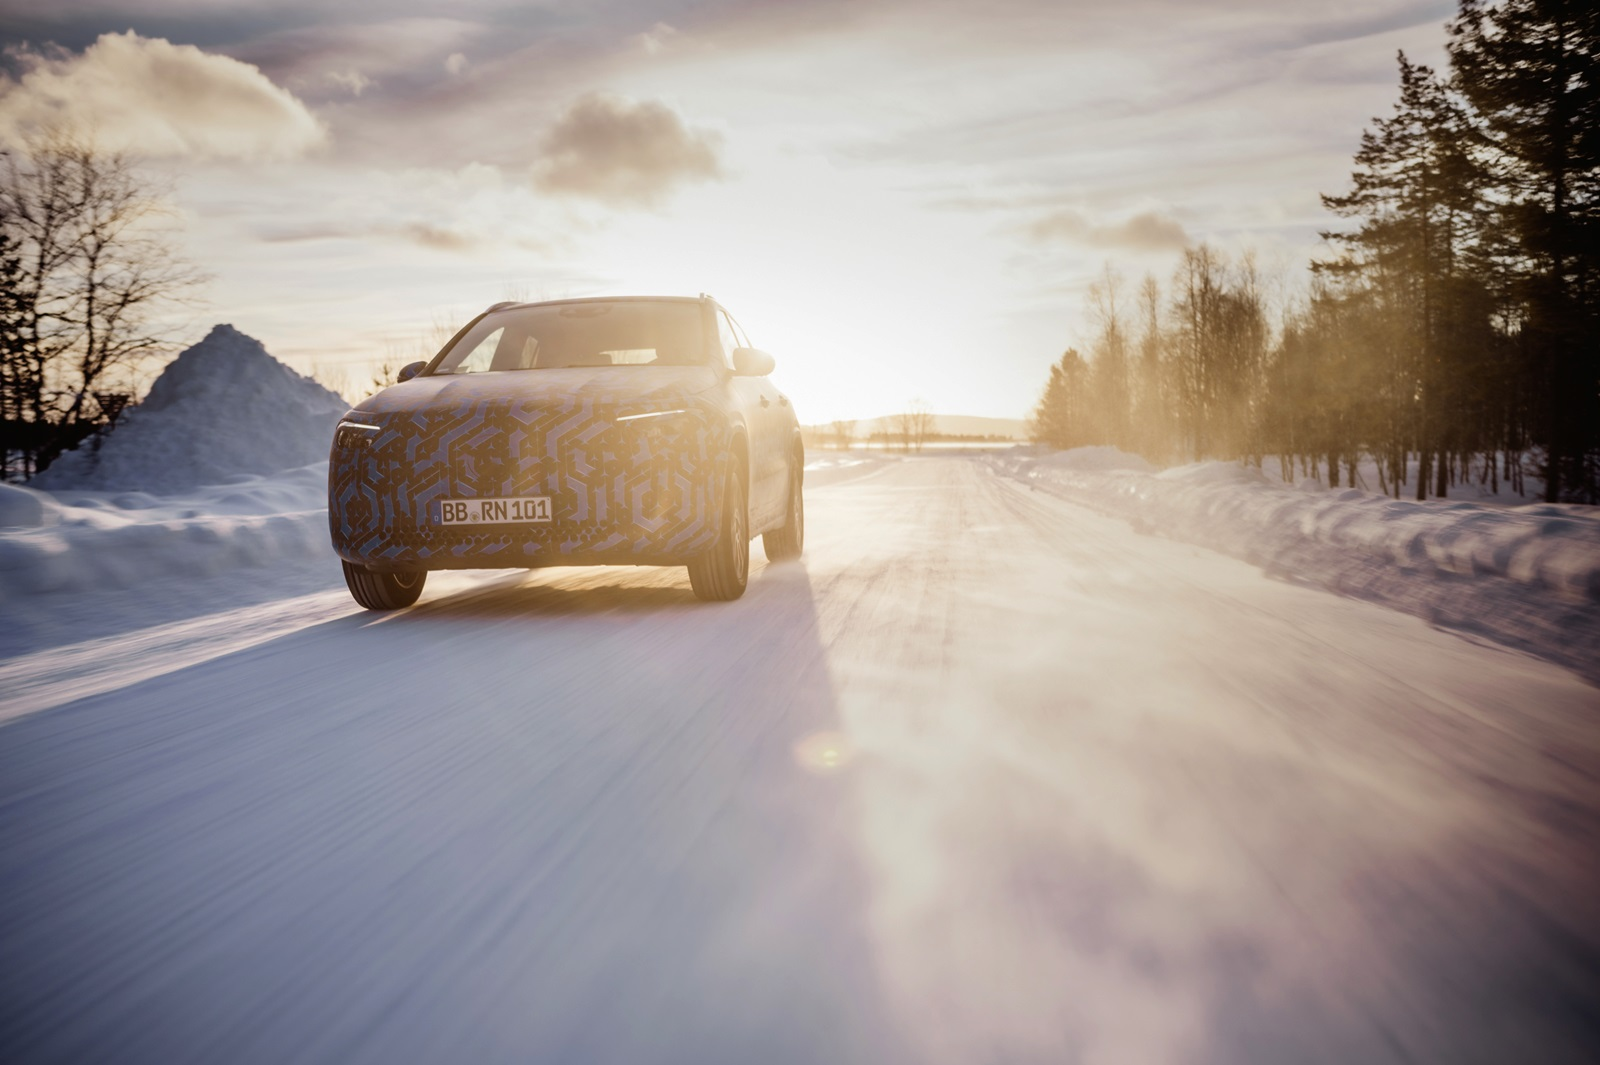 Die Kompakten Werden Elektrisch: Der Eqa Auf Wintererprobung Und Neue Plug In Hybride Auf Dem Genfer Automobilsalon The Compacts Are Turning Electric: The Eqa In Winter Testing And New Plug In Hybrids At The Geneva Motor Show